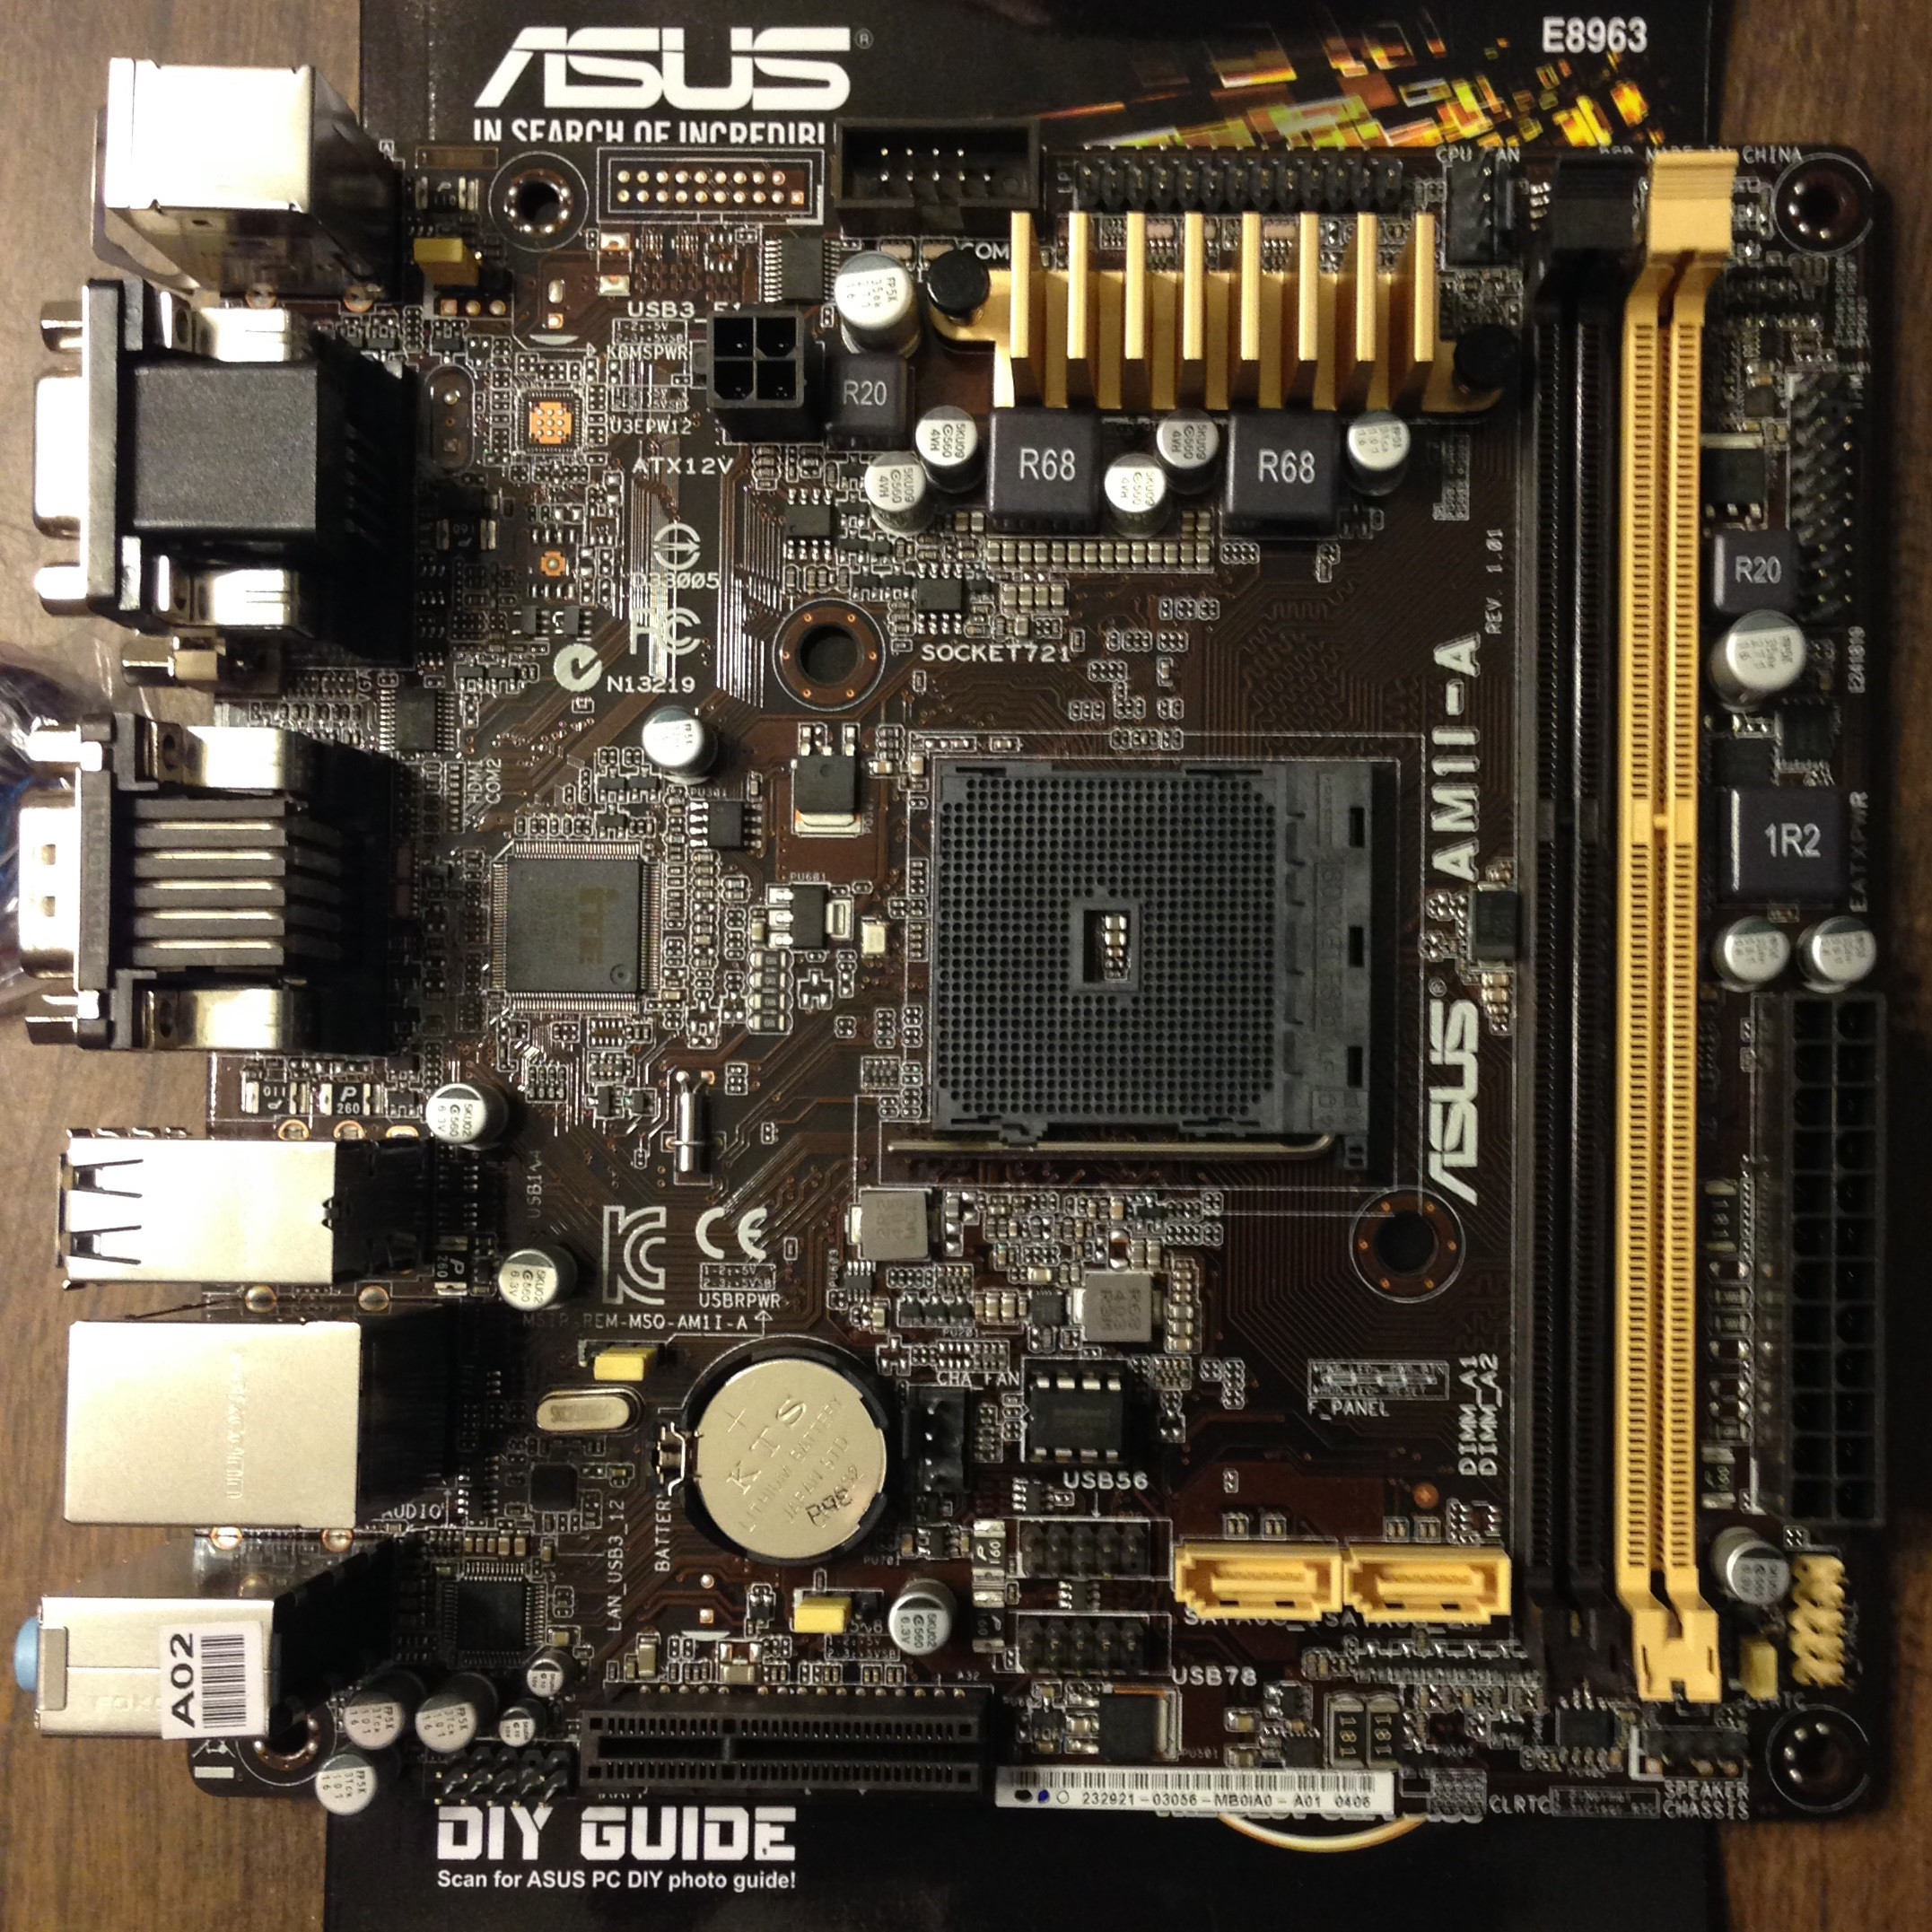 ASUS AM1I-A REALTEK AUDIO DOWNLOAD DRIVERS